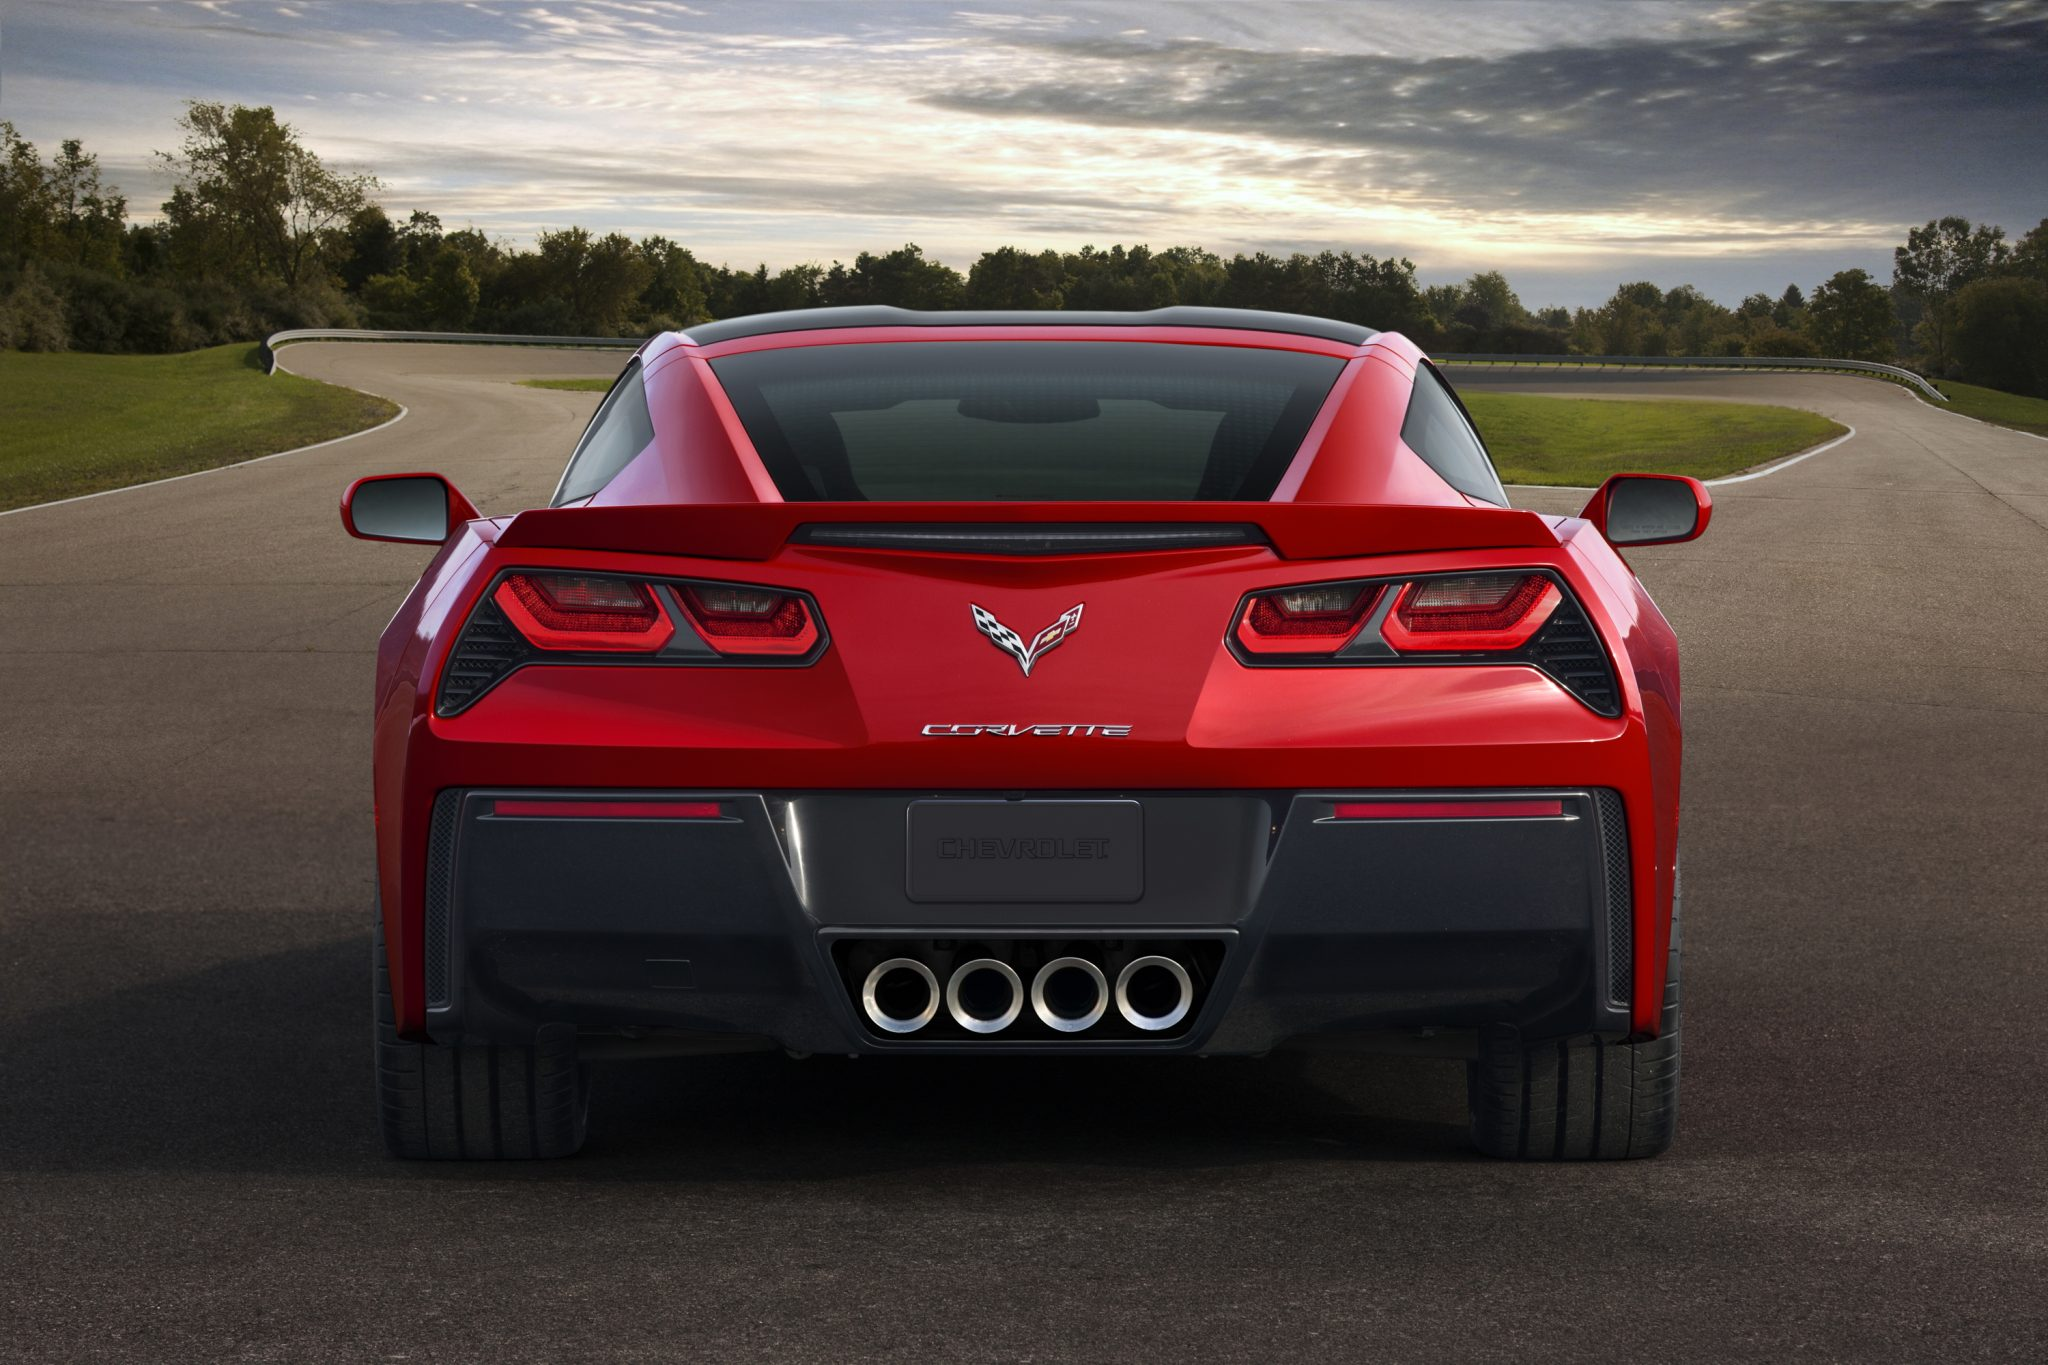 2015 Corvette Stingray Pricing